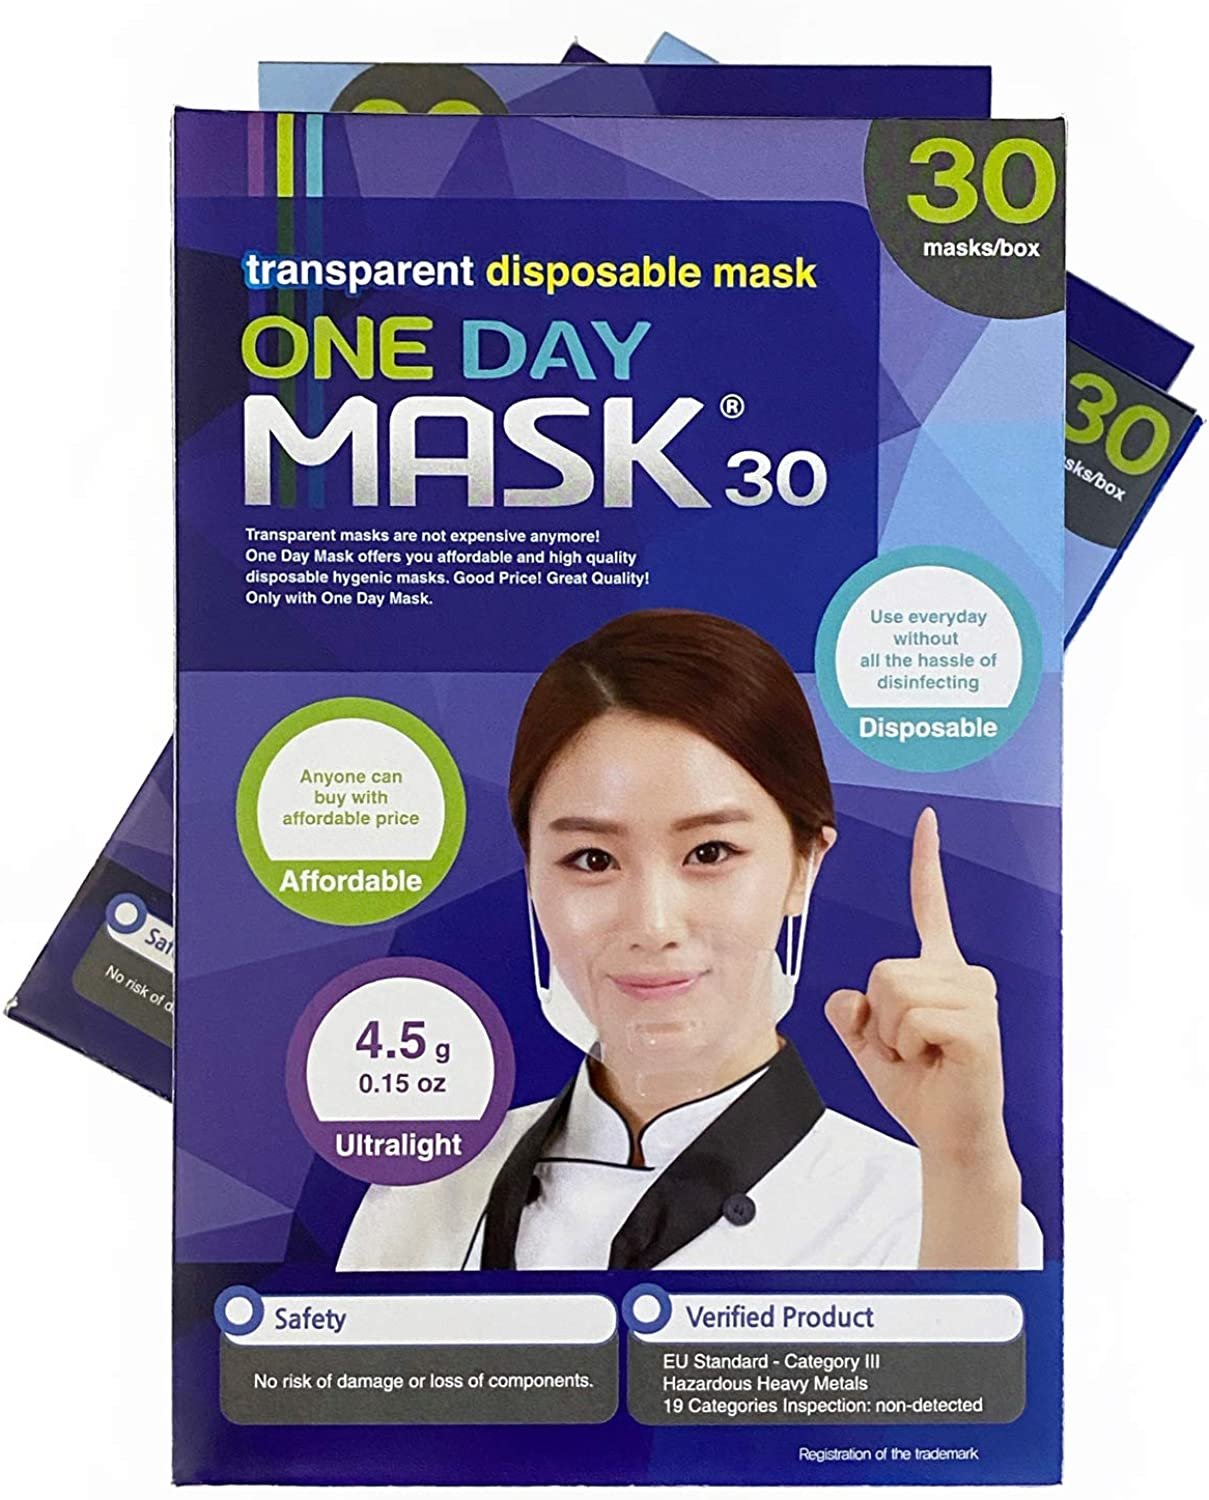 One Day Transparent Mask (Made in Korea) - Mouth Shield / Mask / Disposable/Ultralight Weight/Seamless Design/Safety/Food Handling/Food Safety/Catering (Pack of 30)